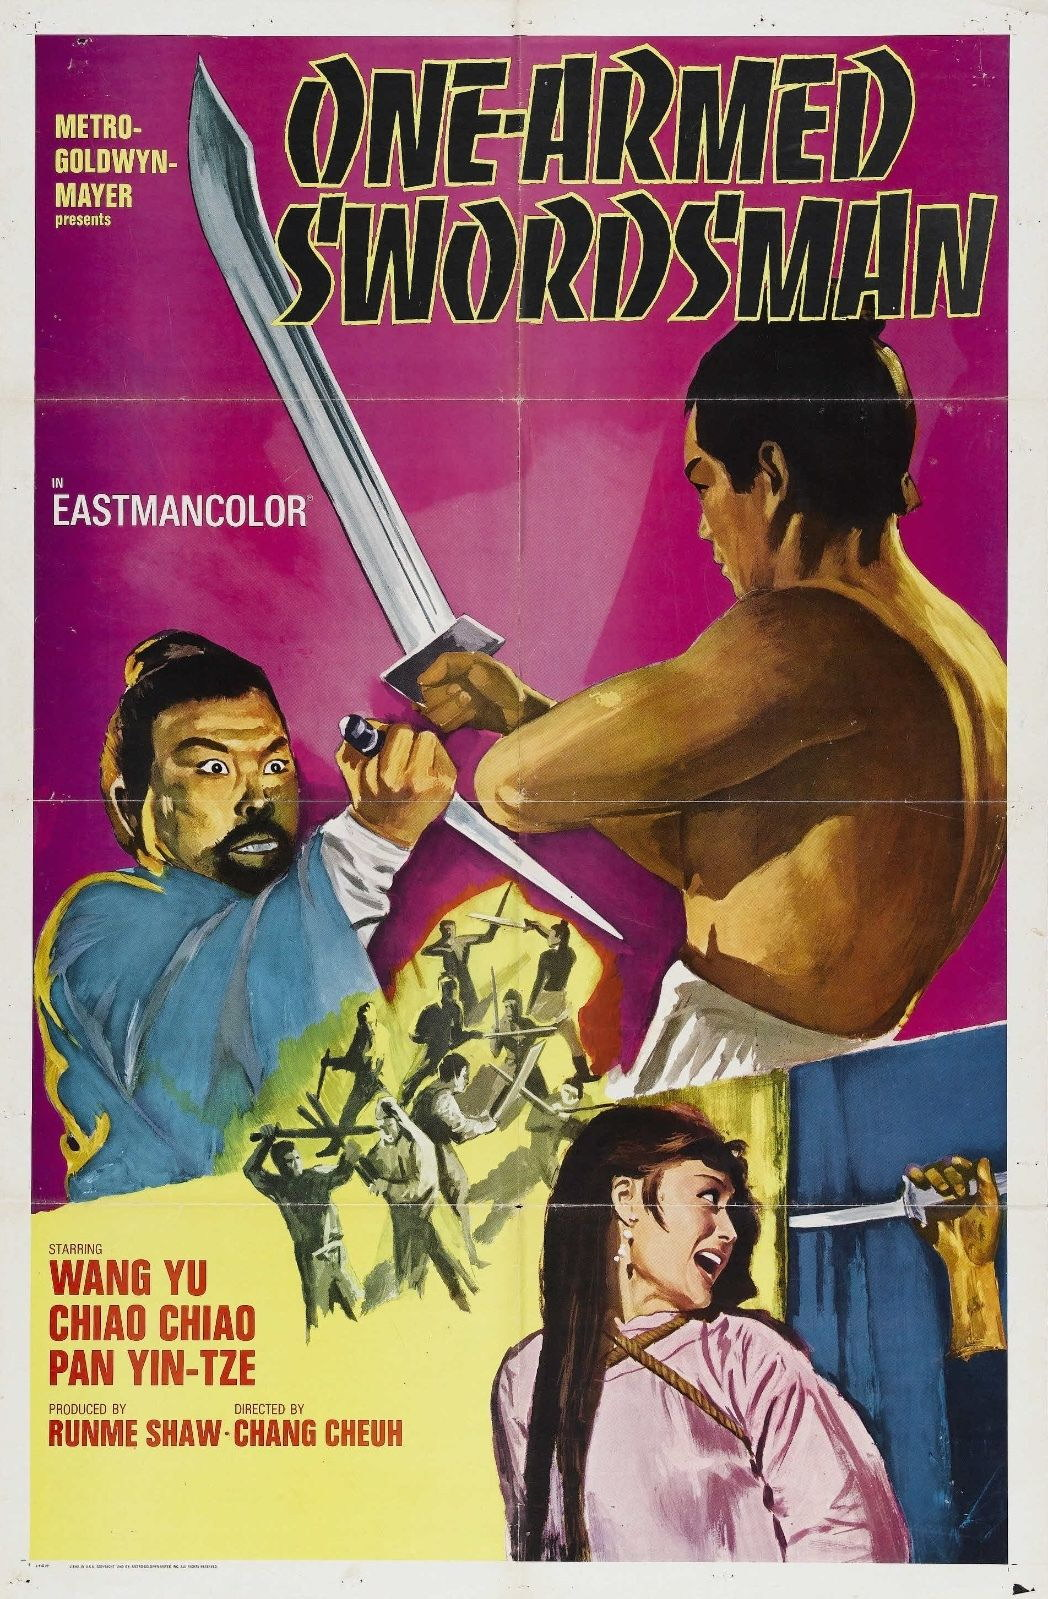 73347 One-Armed Swordsman Drama Action Shaw Brothers Wall Print Poster Affiche